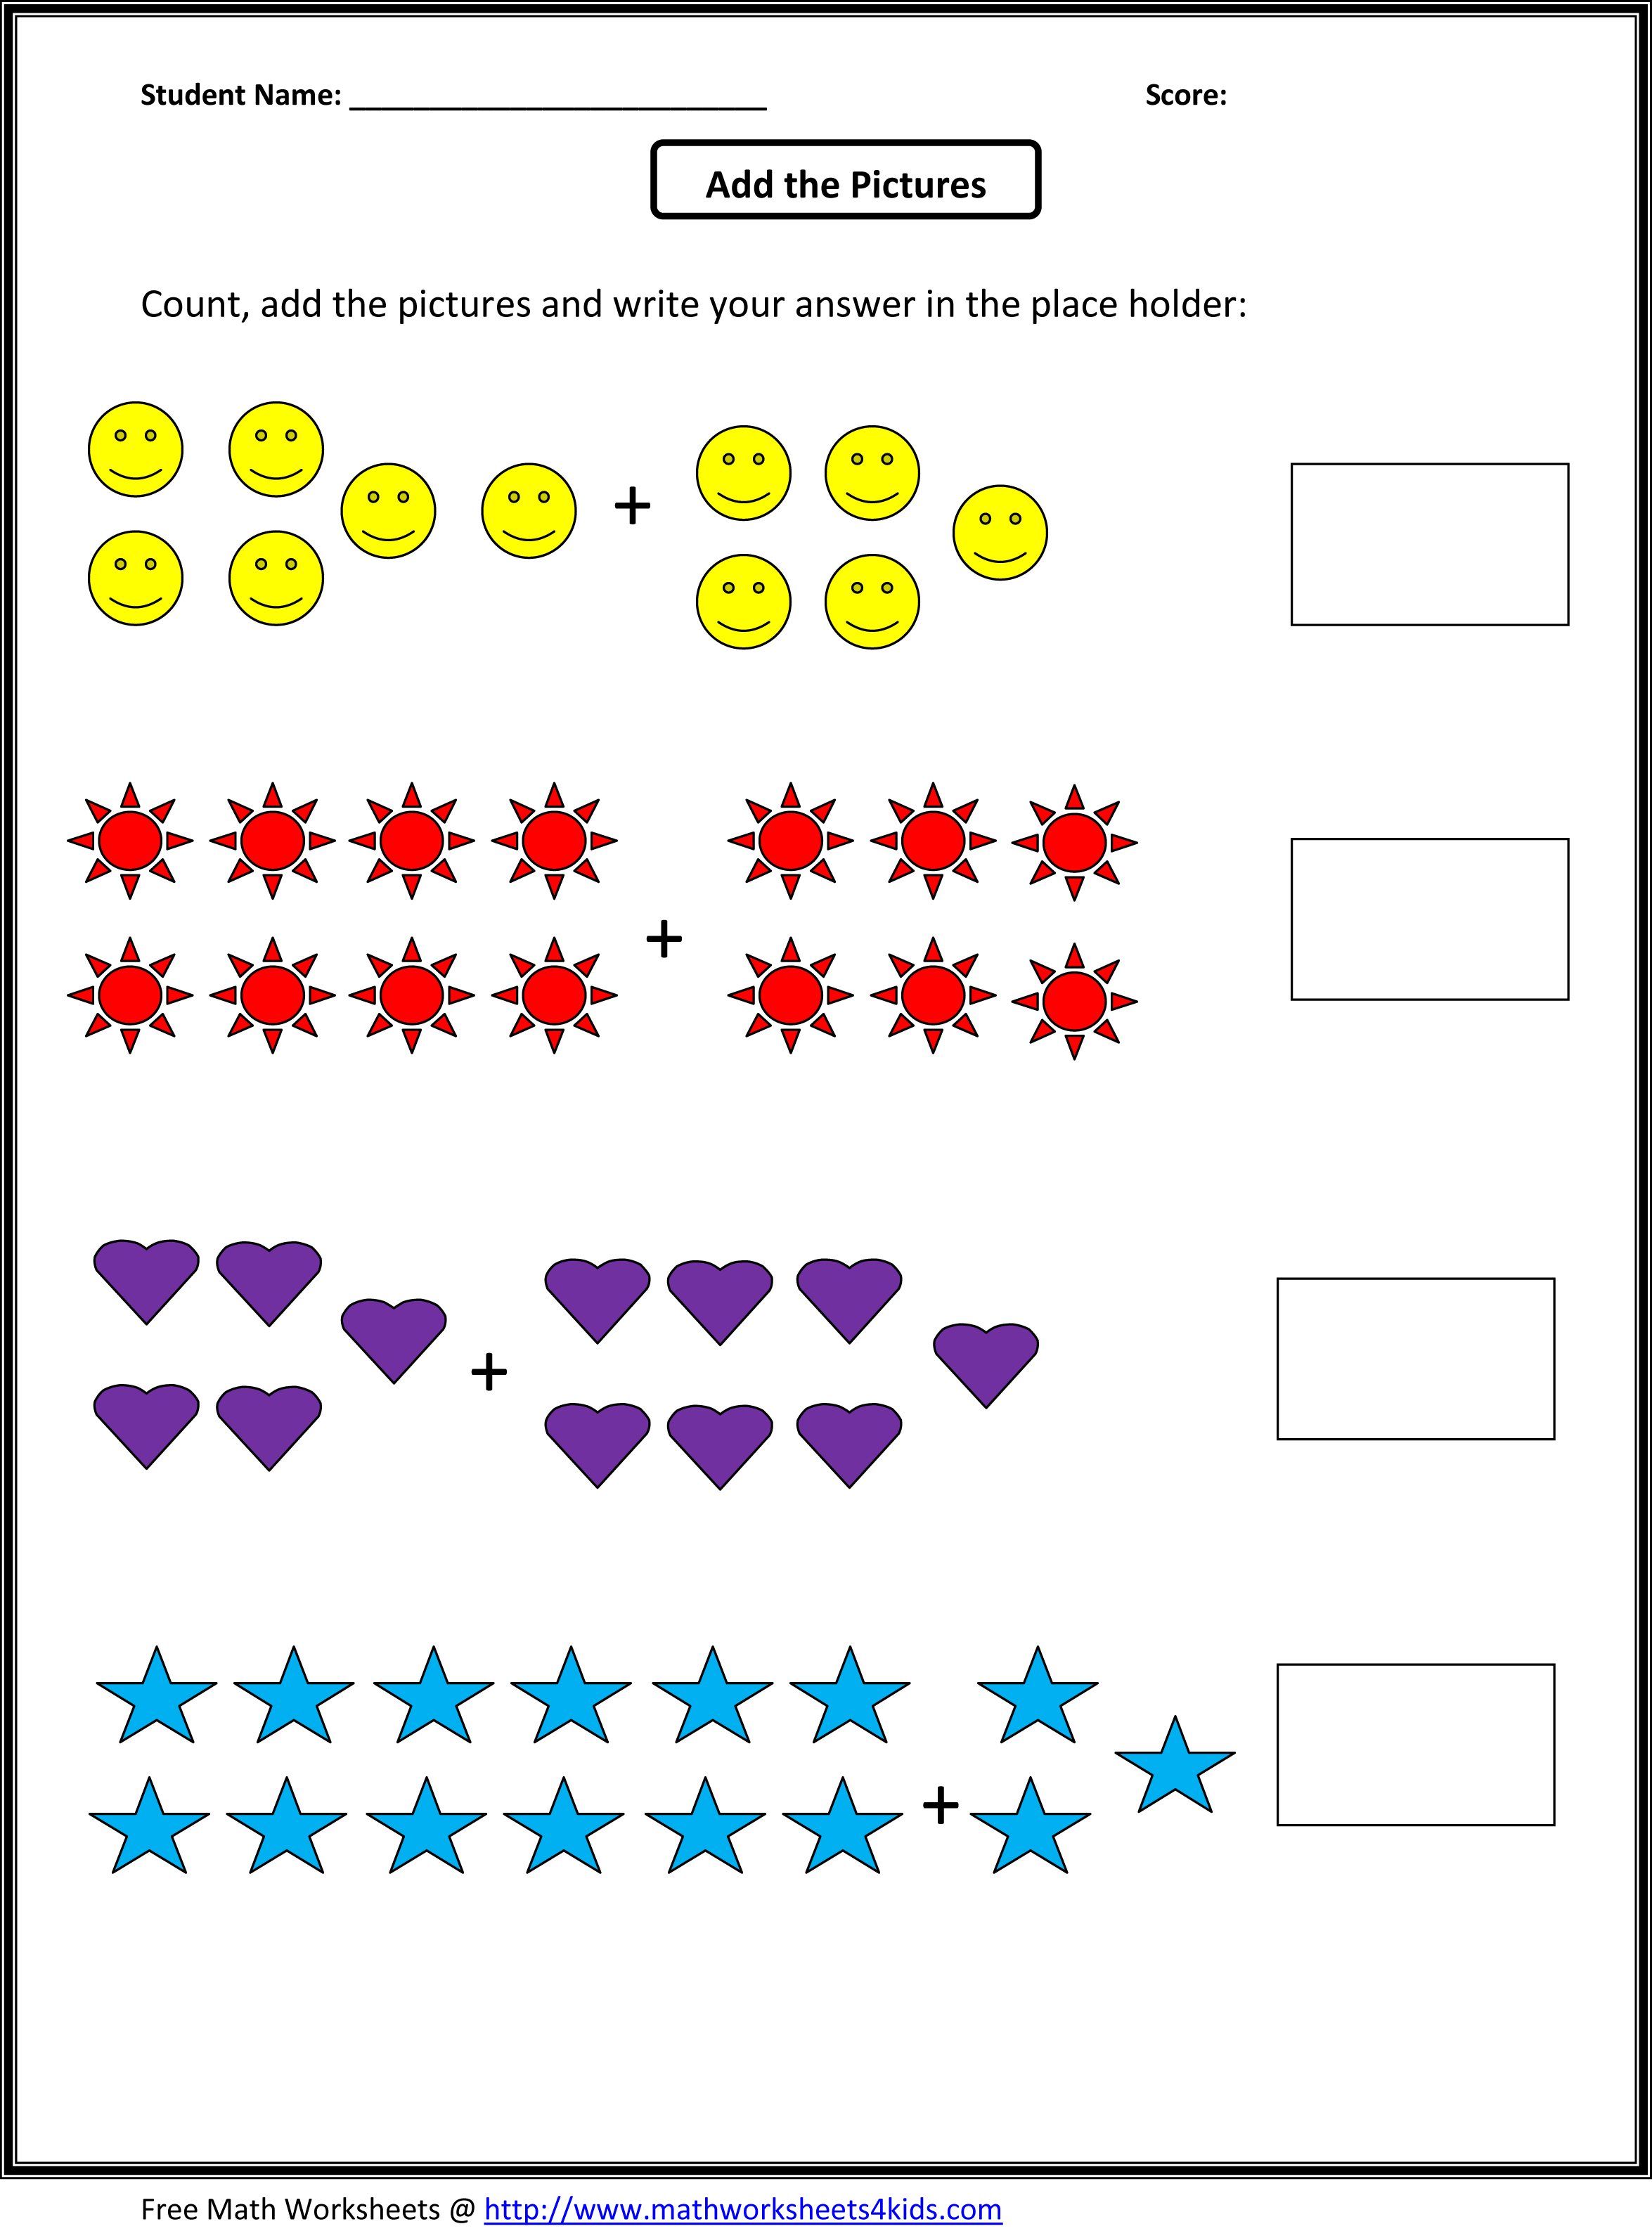 Weirdmailus  Fascinating Grade  Maths Worksheet  Reocurent With Extraordinary Math Worksheets For St Grade Free  Reocurent With Charming Coordinate Graph Pictures Worksheet Also Simpson Family Tree Worksheet In Addition Esl Worksheets Middle School And Worksheets For Maths Ks As Well As Free Printable Worksheets On Verbs Additionally Free Printable Preschool Letter Tracing Worksheets From Reocurentcom With Weirdmailus  Extraordinary Grade  Maths Worksheet  Reocurent With Charming Math Worksheets For St Grade Free  Reocurent And Fascinating Coordinate Graph Pictures Worksheet Also Simpson Family Tree Worksheet In Addition Esl Worksheets Middle School From Reocurentcom